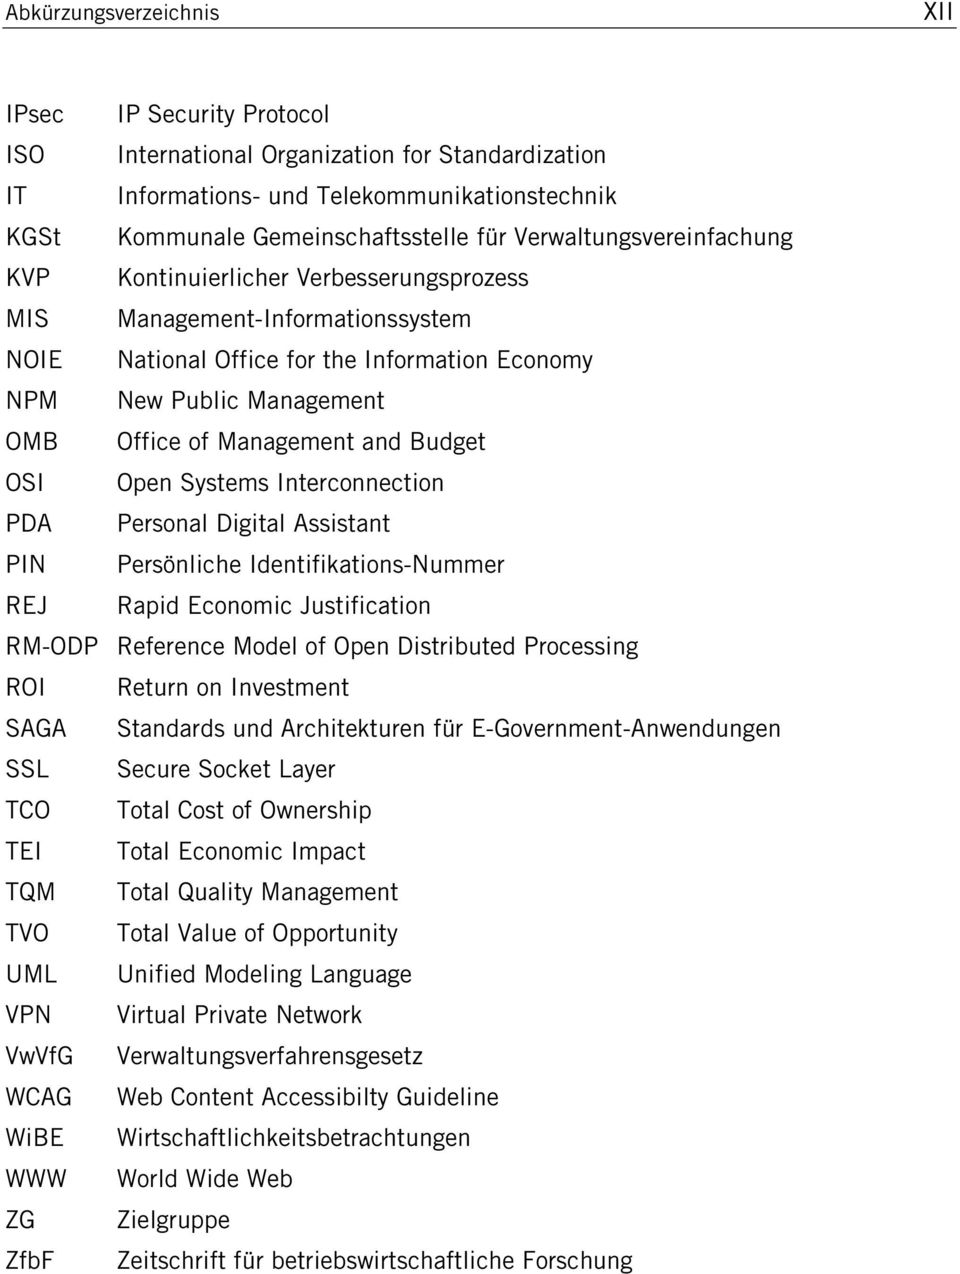 Management and Budget OSI Open Systems Interconnection PDA Personal Digital Assistant PIN Persönliche Identifikations-Nummer REJ Rapid Economic Justification RM-ODP Reference Model of Open